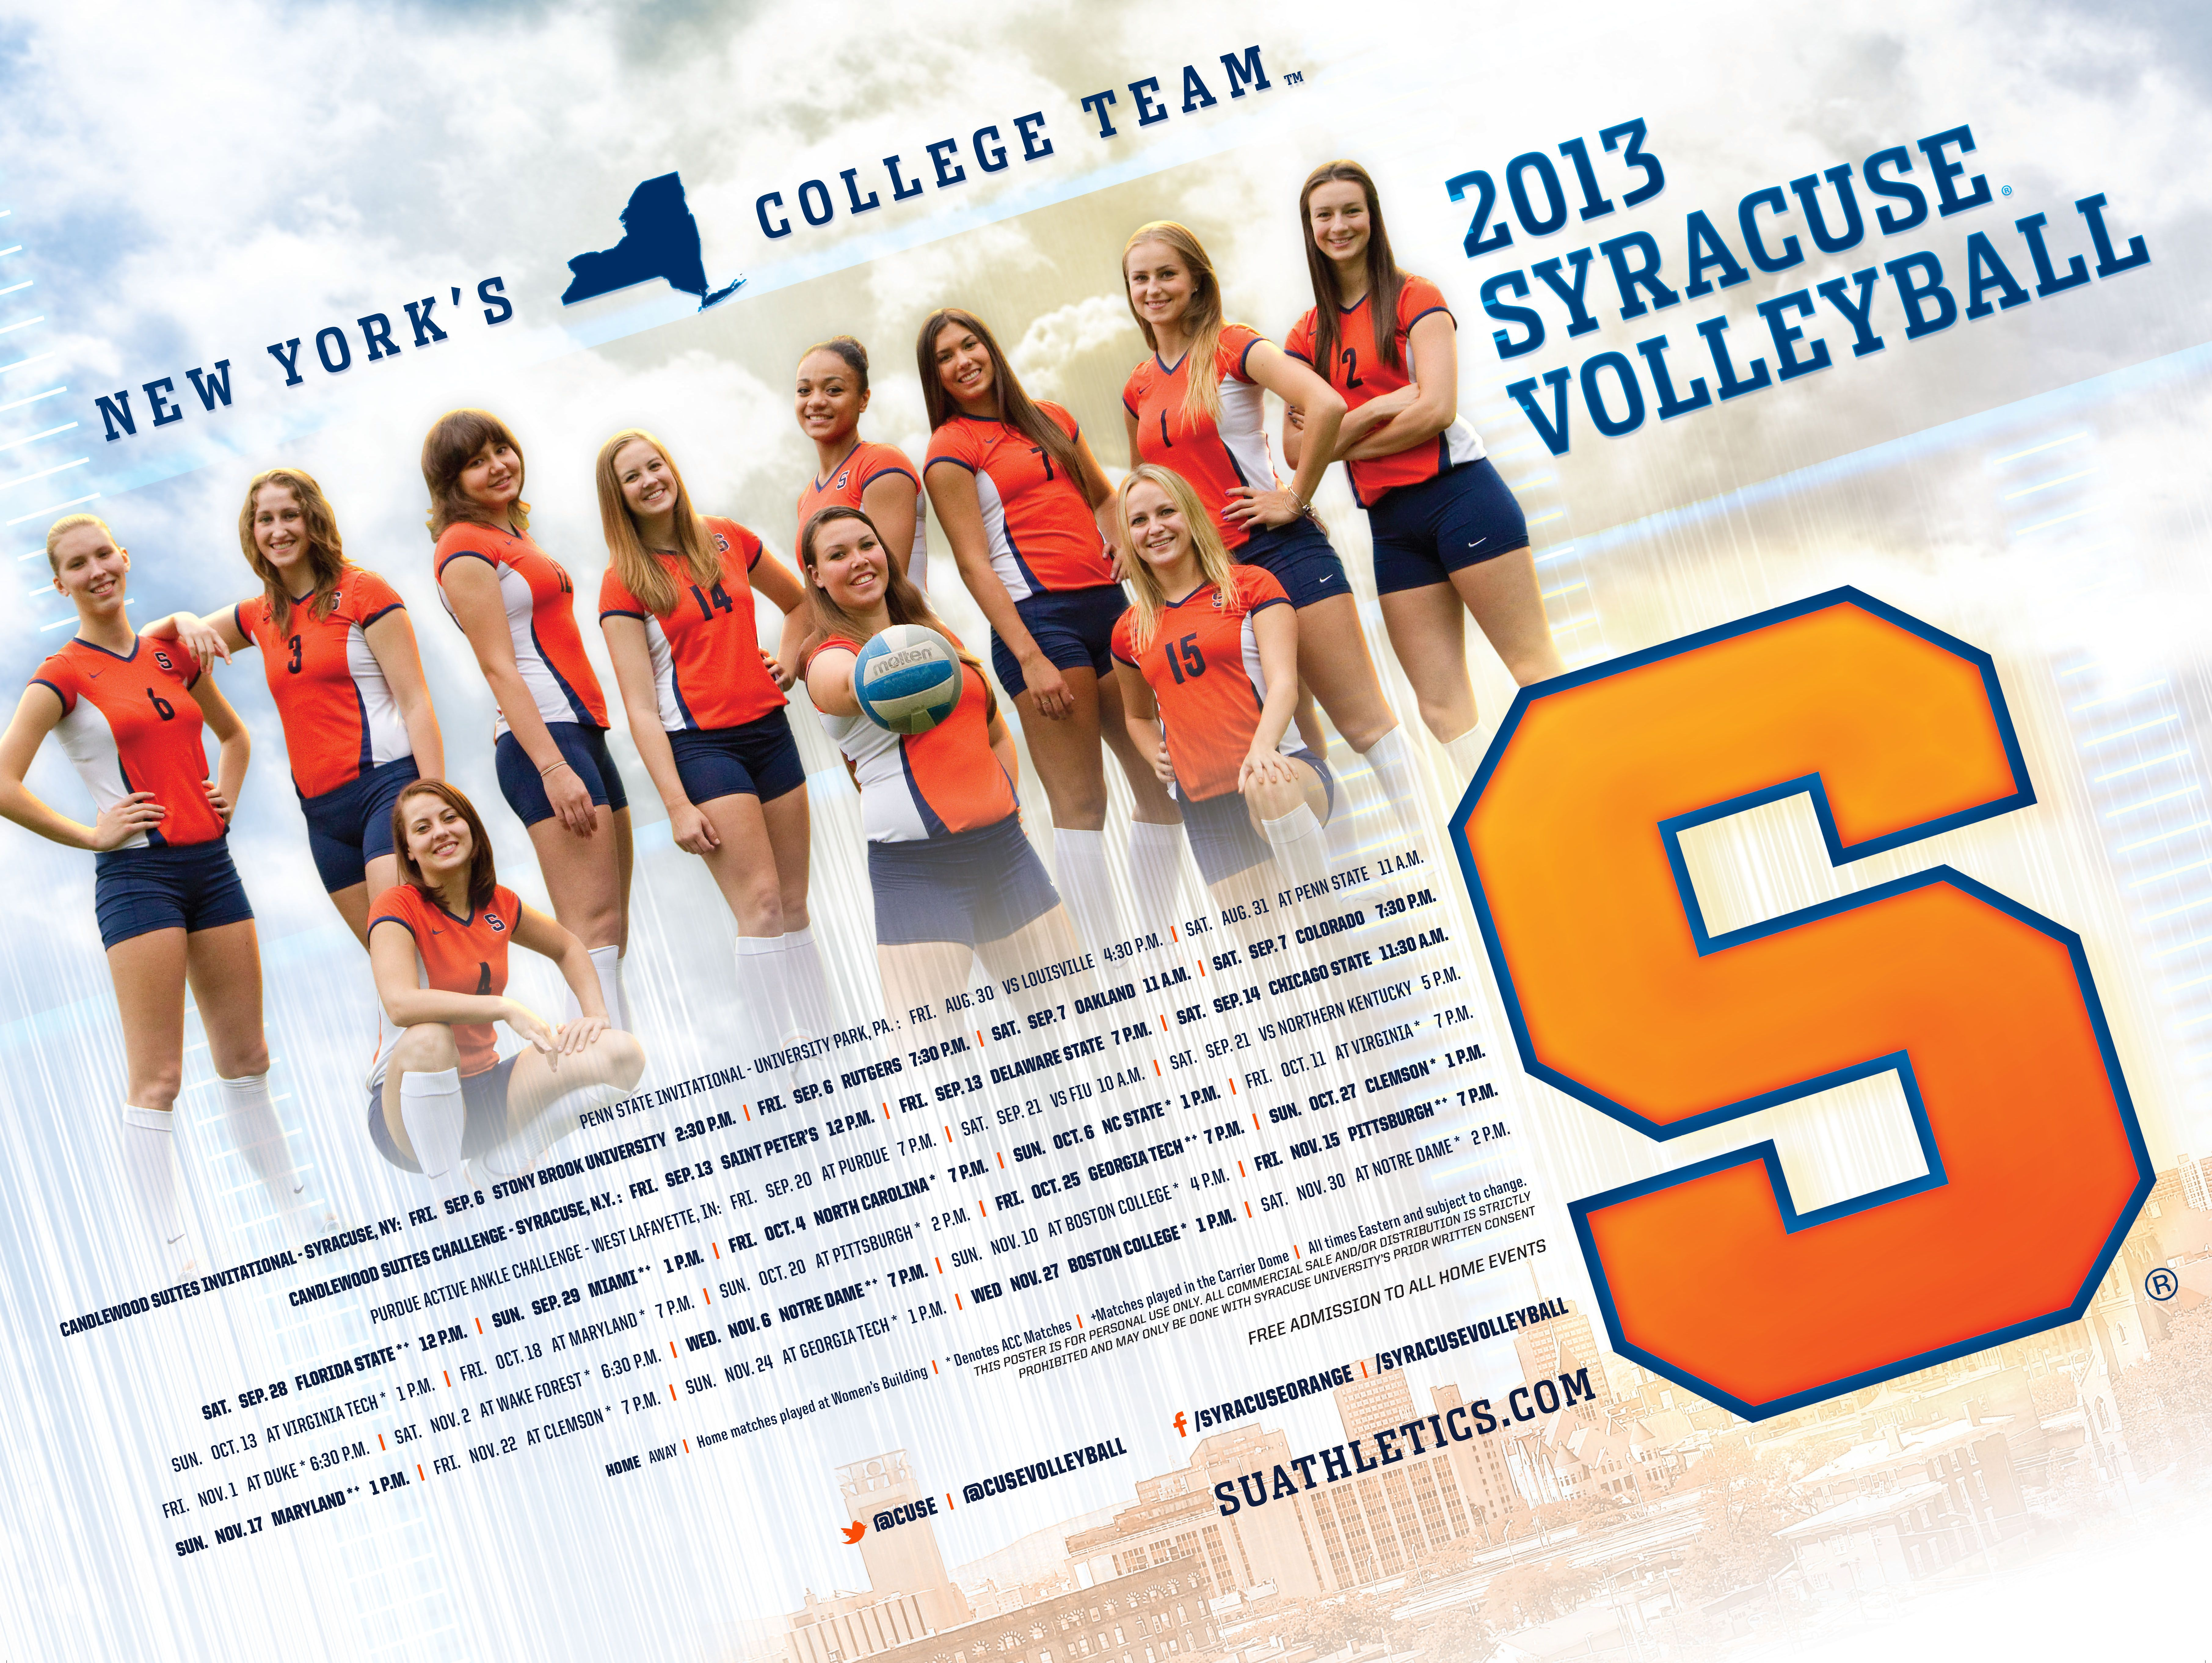 Syracuse Volleyball 2013 Volleyball Posters Volleyball Syracuse